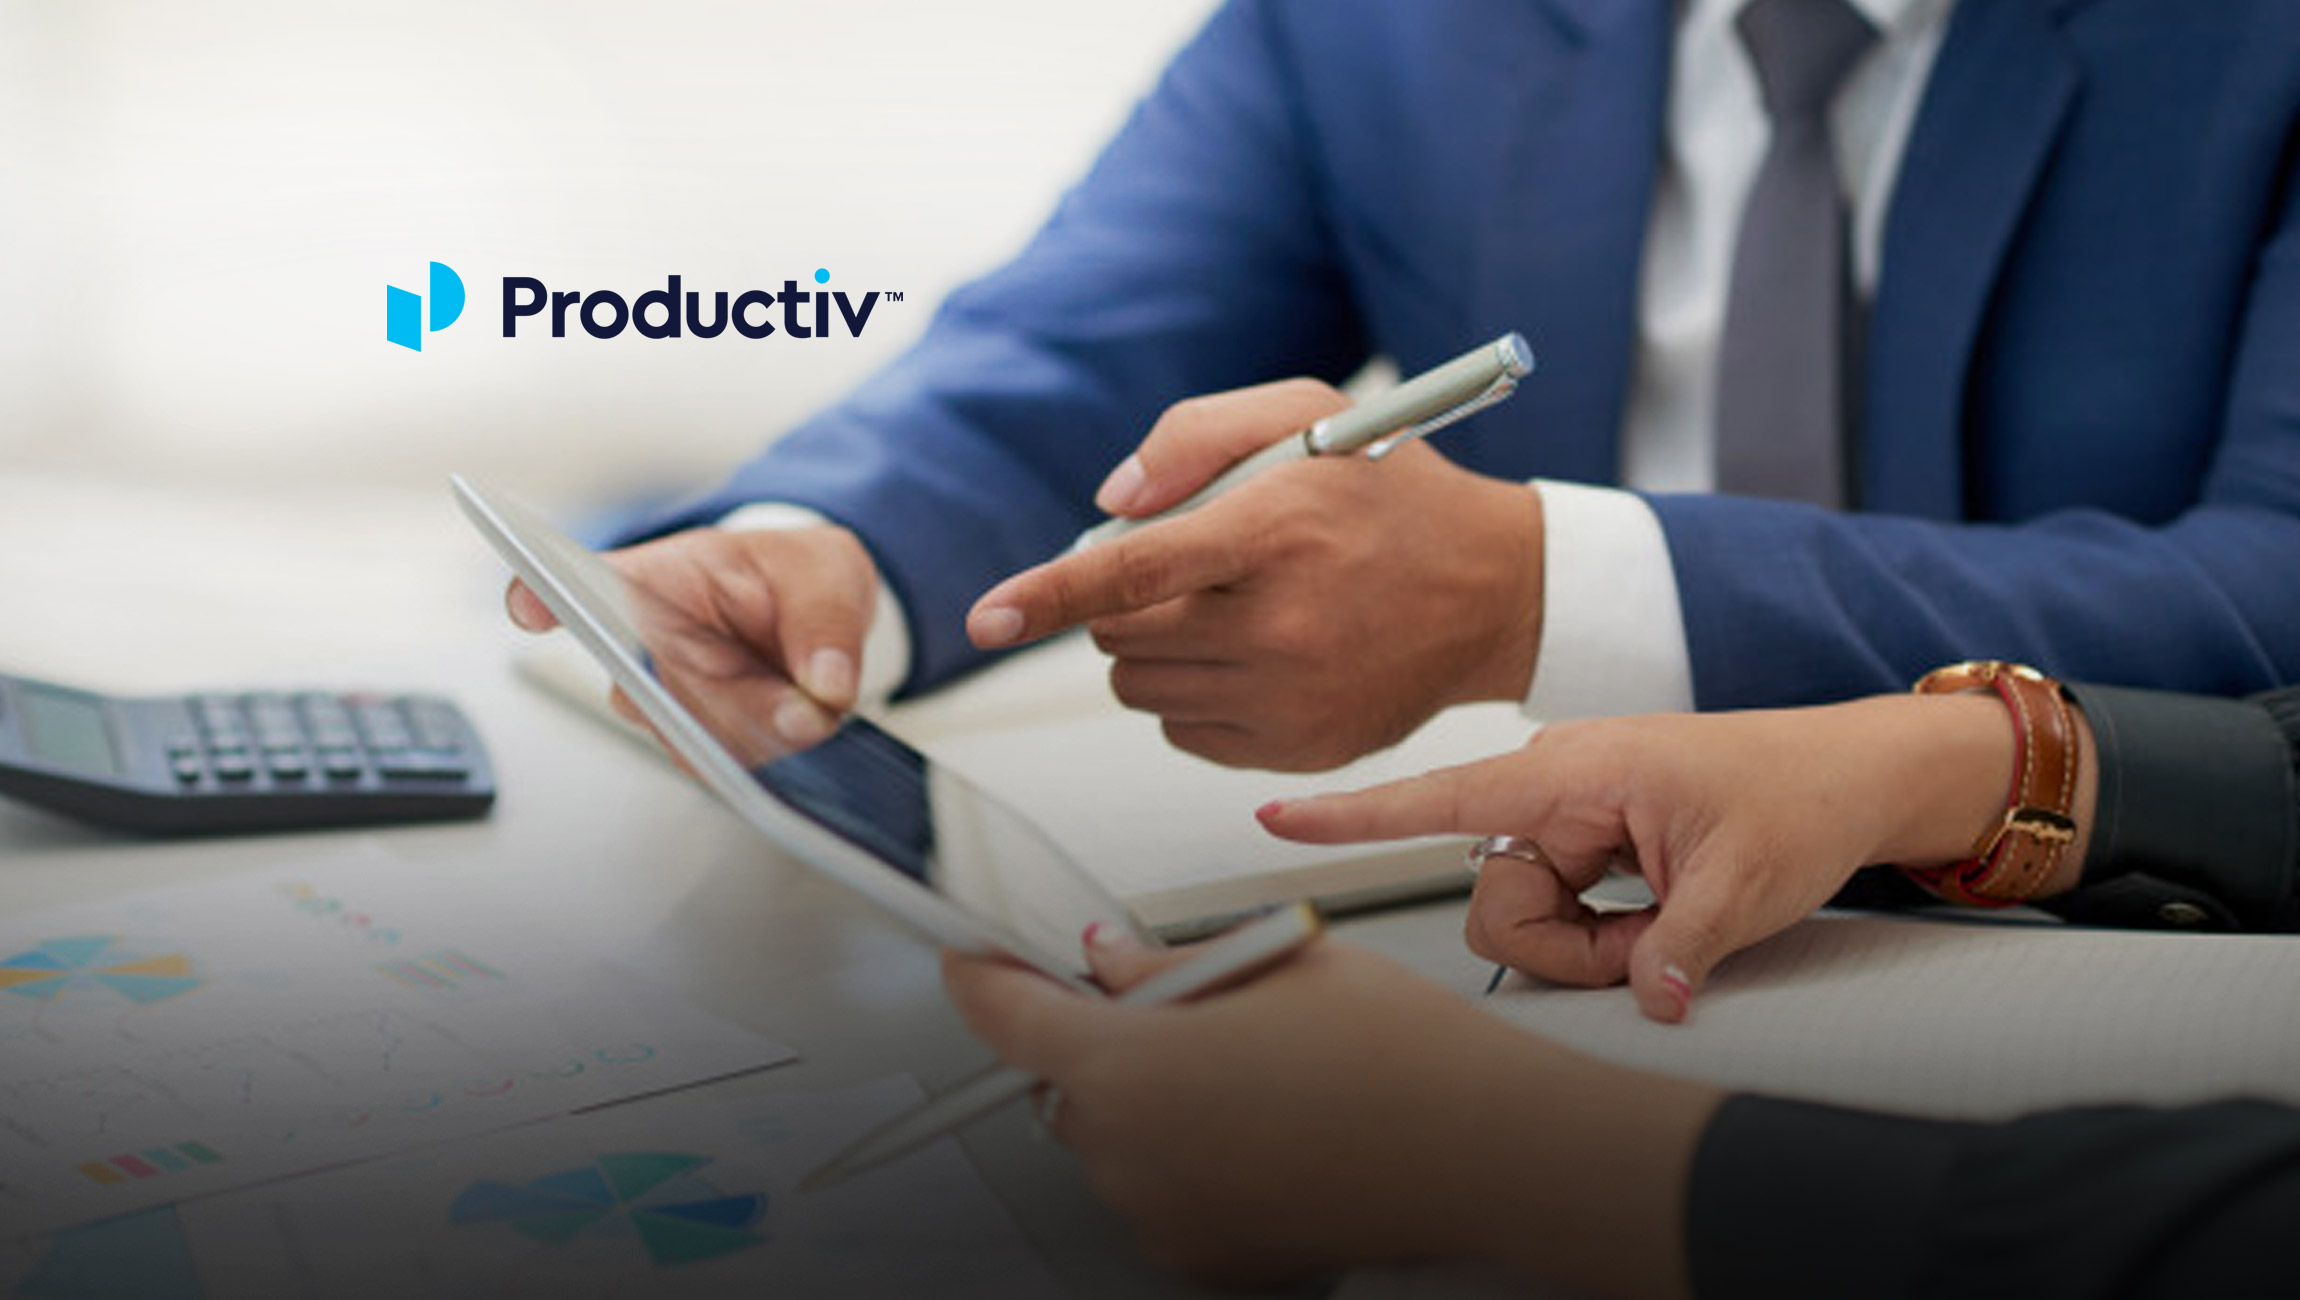 Productiv Named a May 2020 Cool Vendor in Gartner's Cool Vendors in the Digital Workplace Report